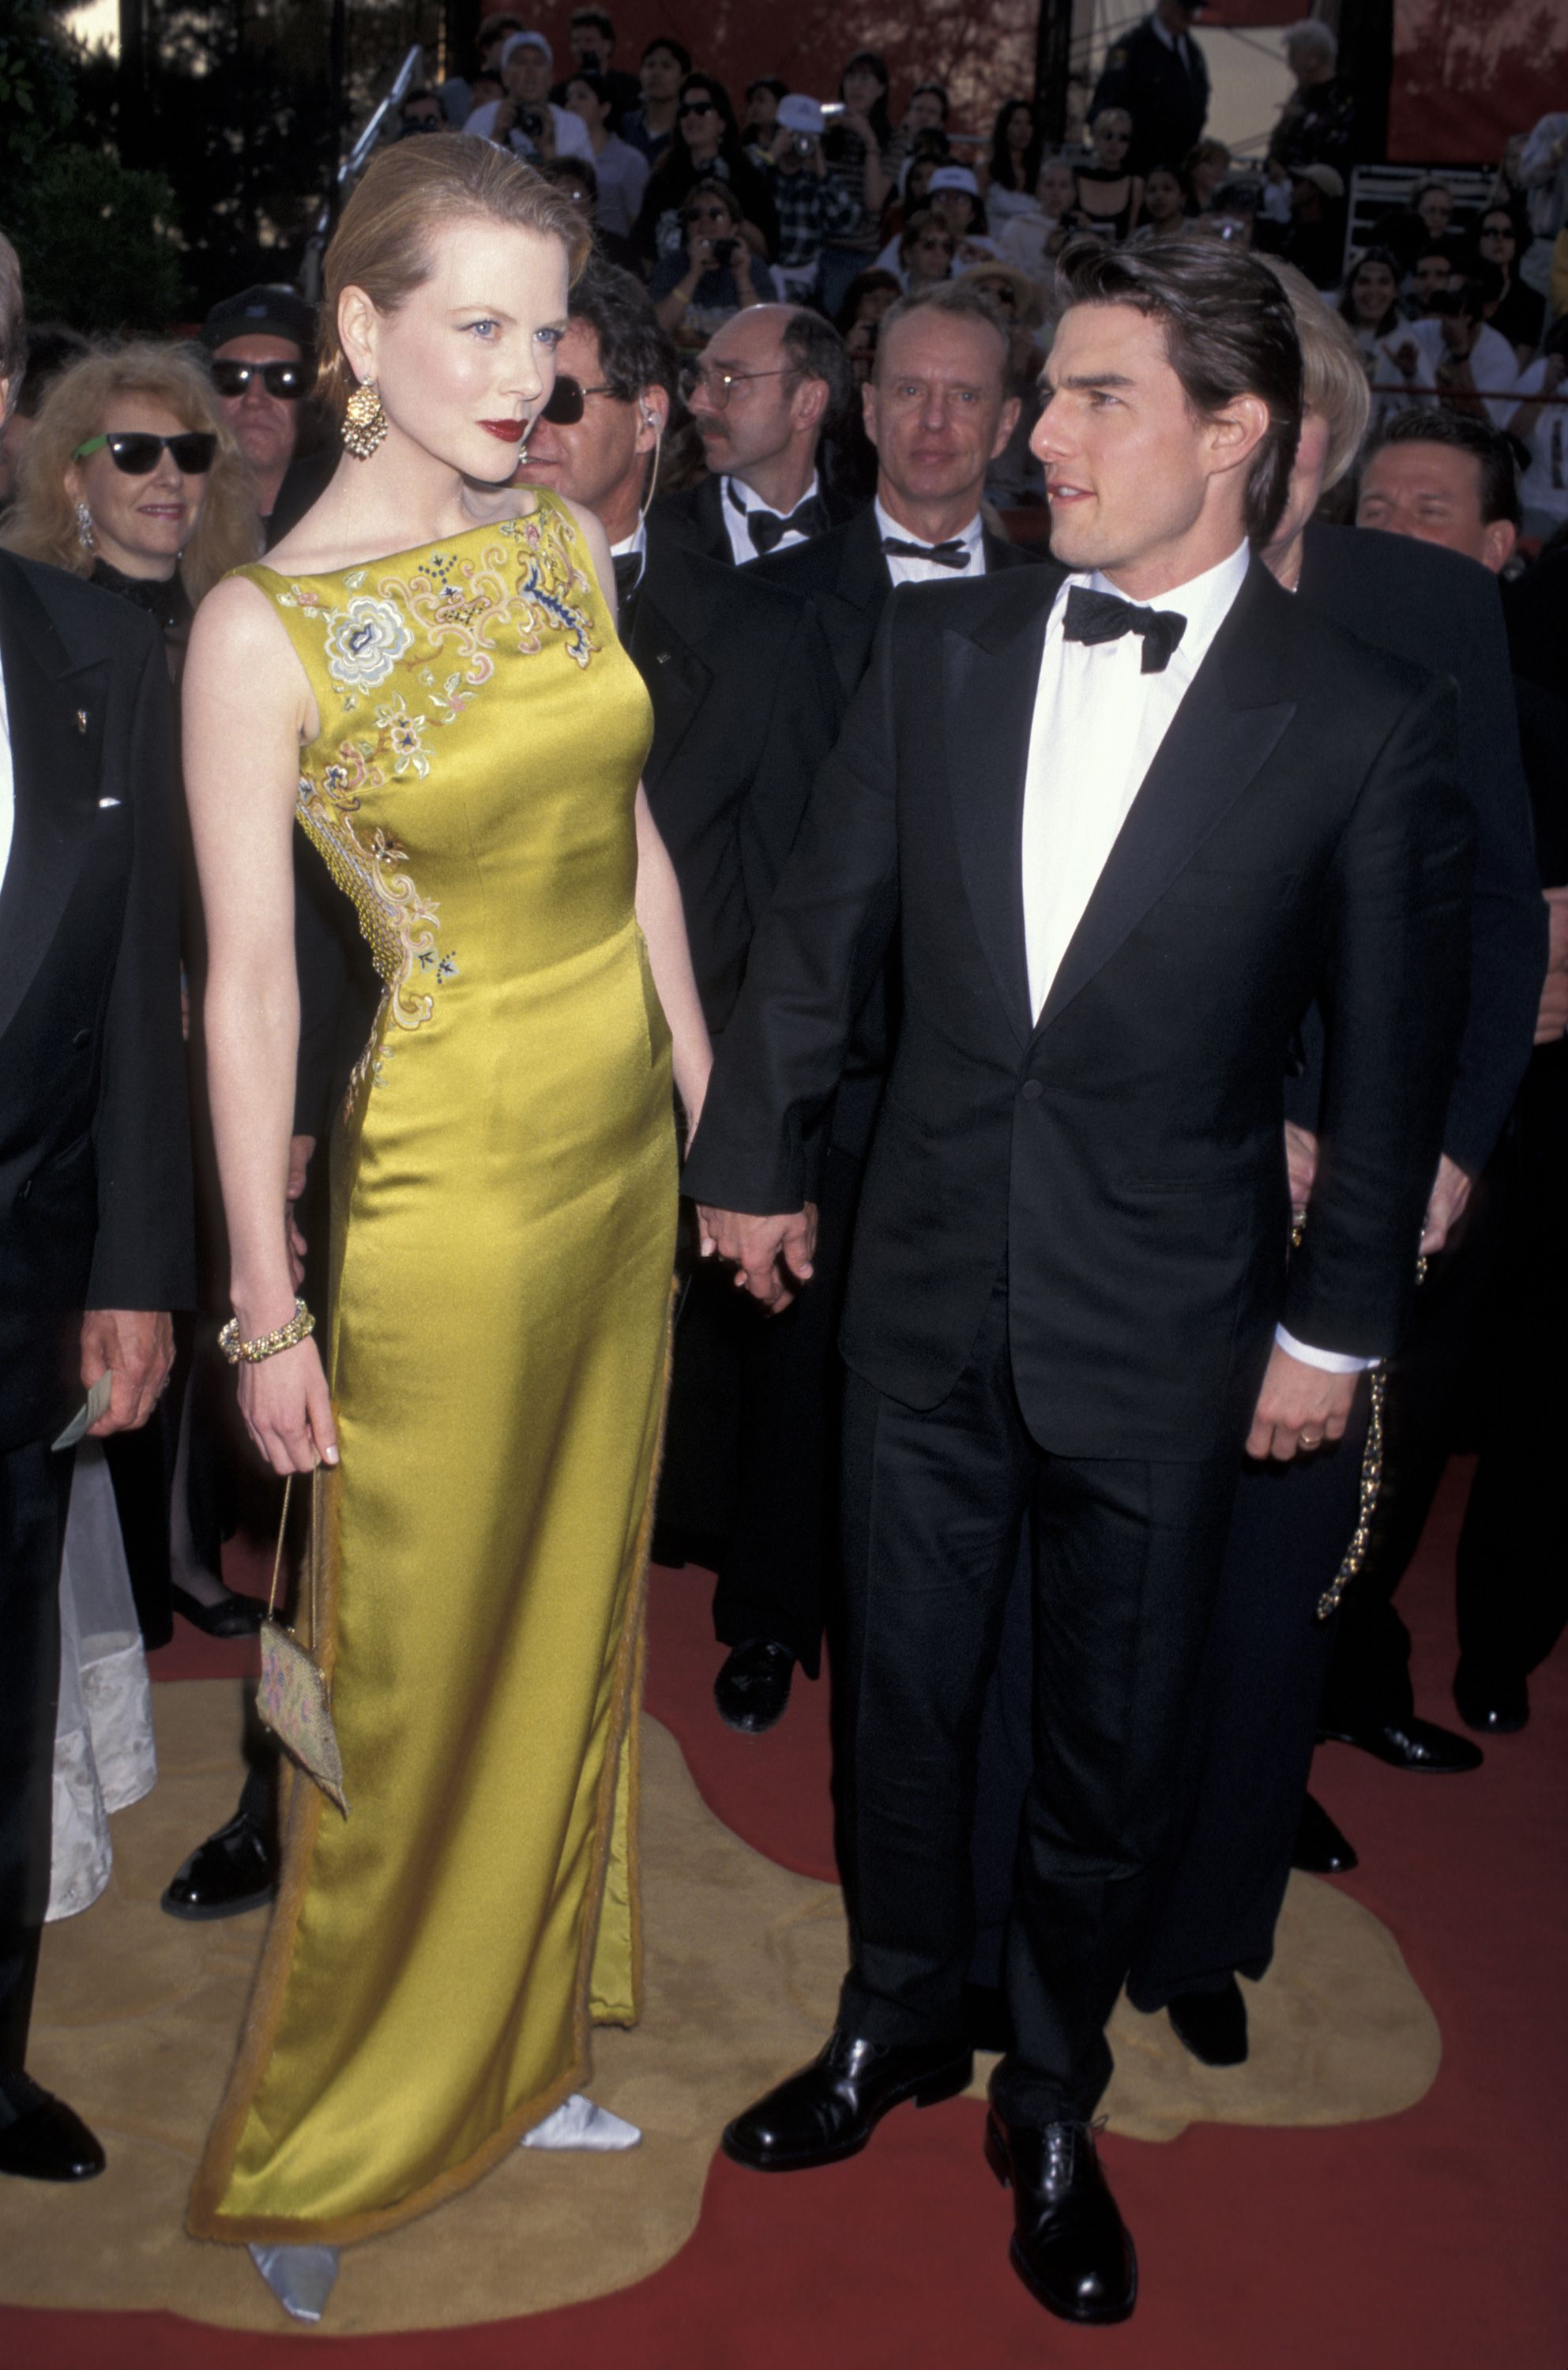 Nicole Kidman and Tom Cruise arrive at the 69th Annual Academy Awards. | Source: Getty Images